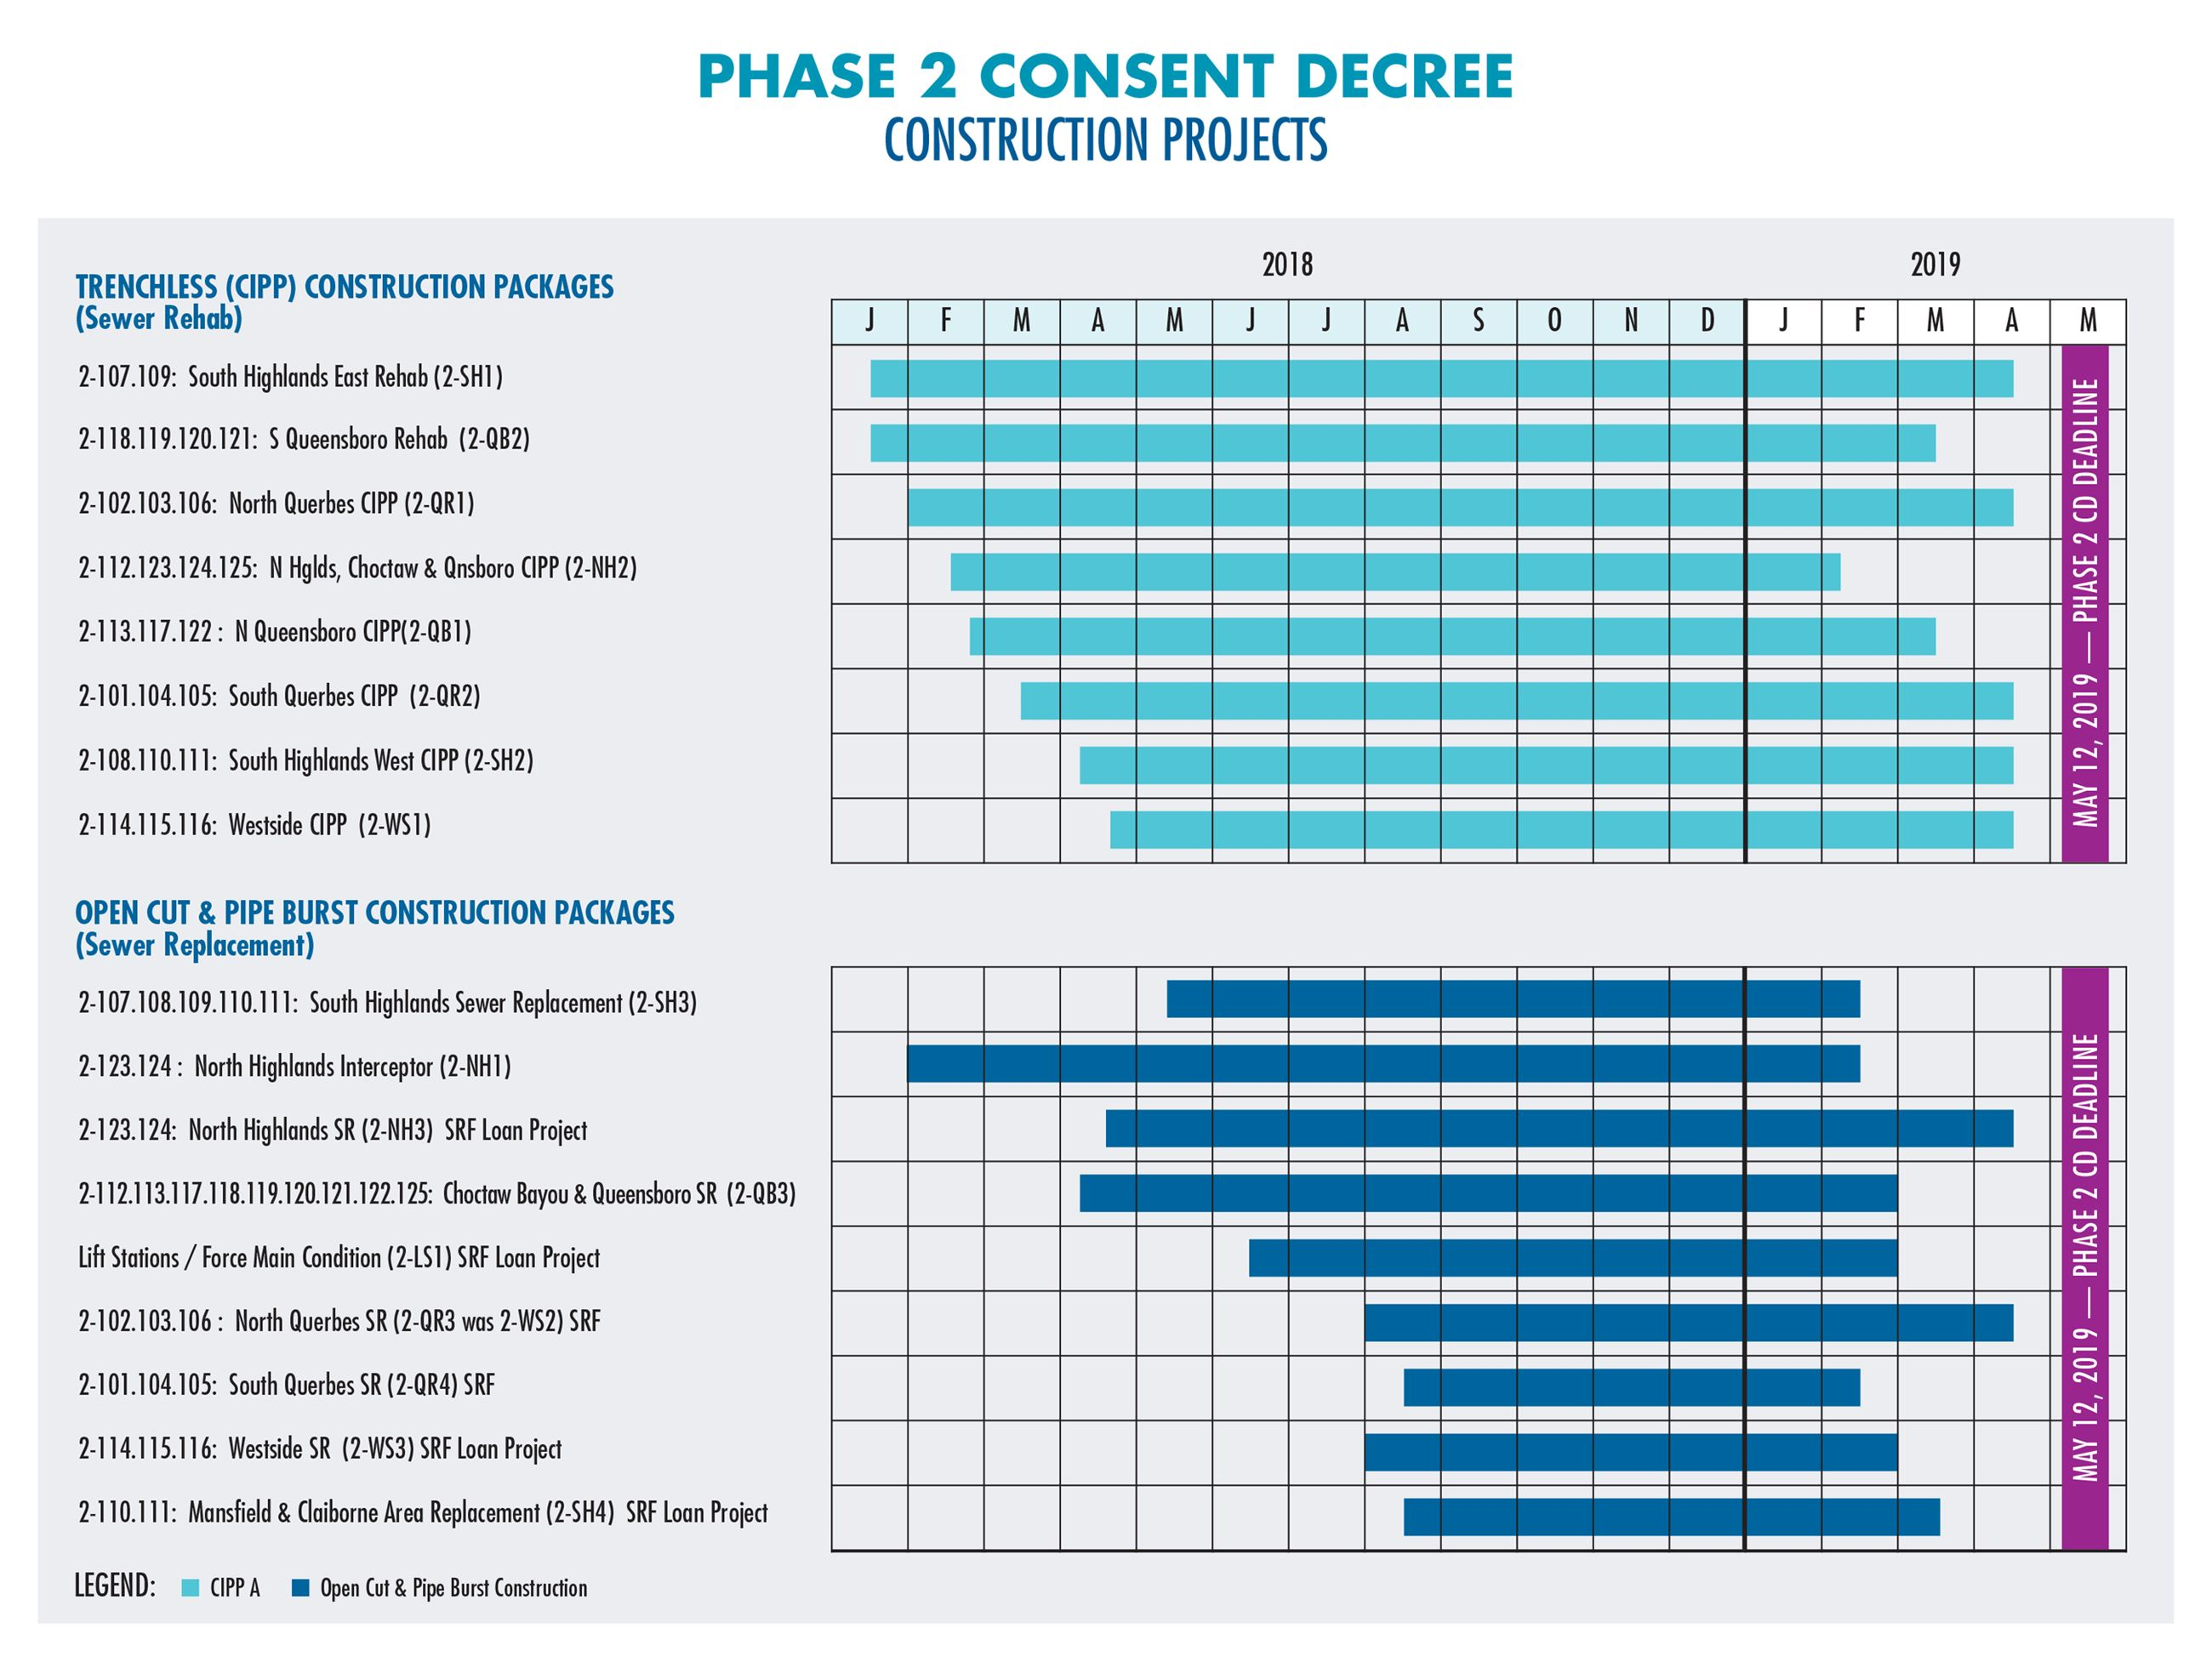 Phase 2 Consent Decree Construction Timeline